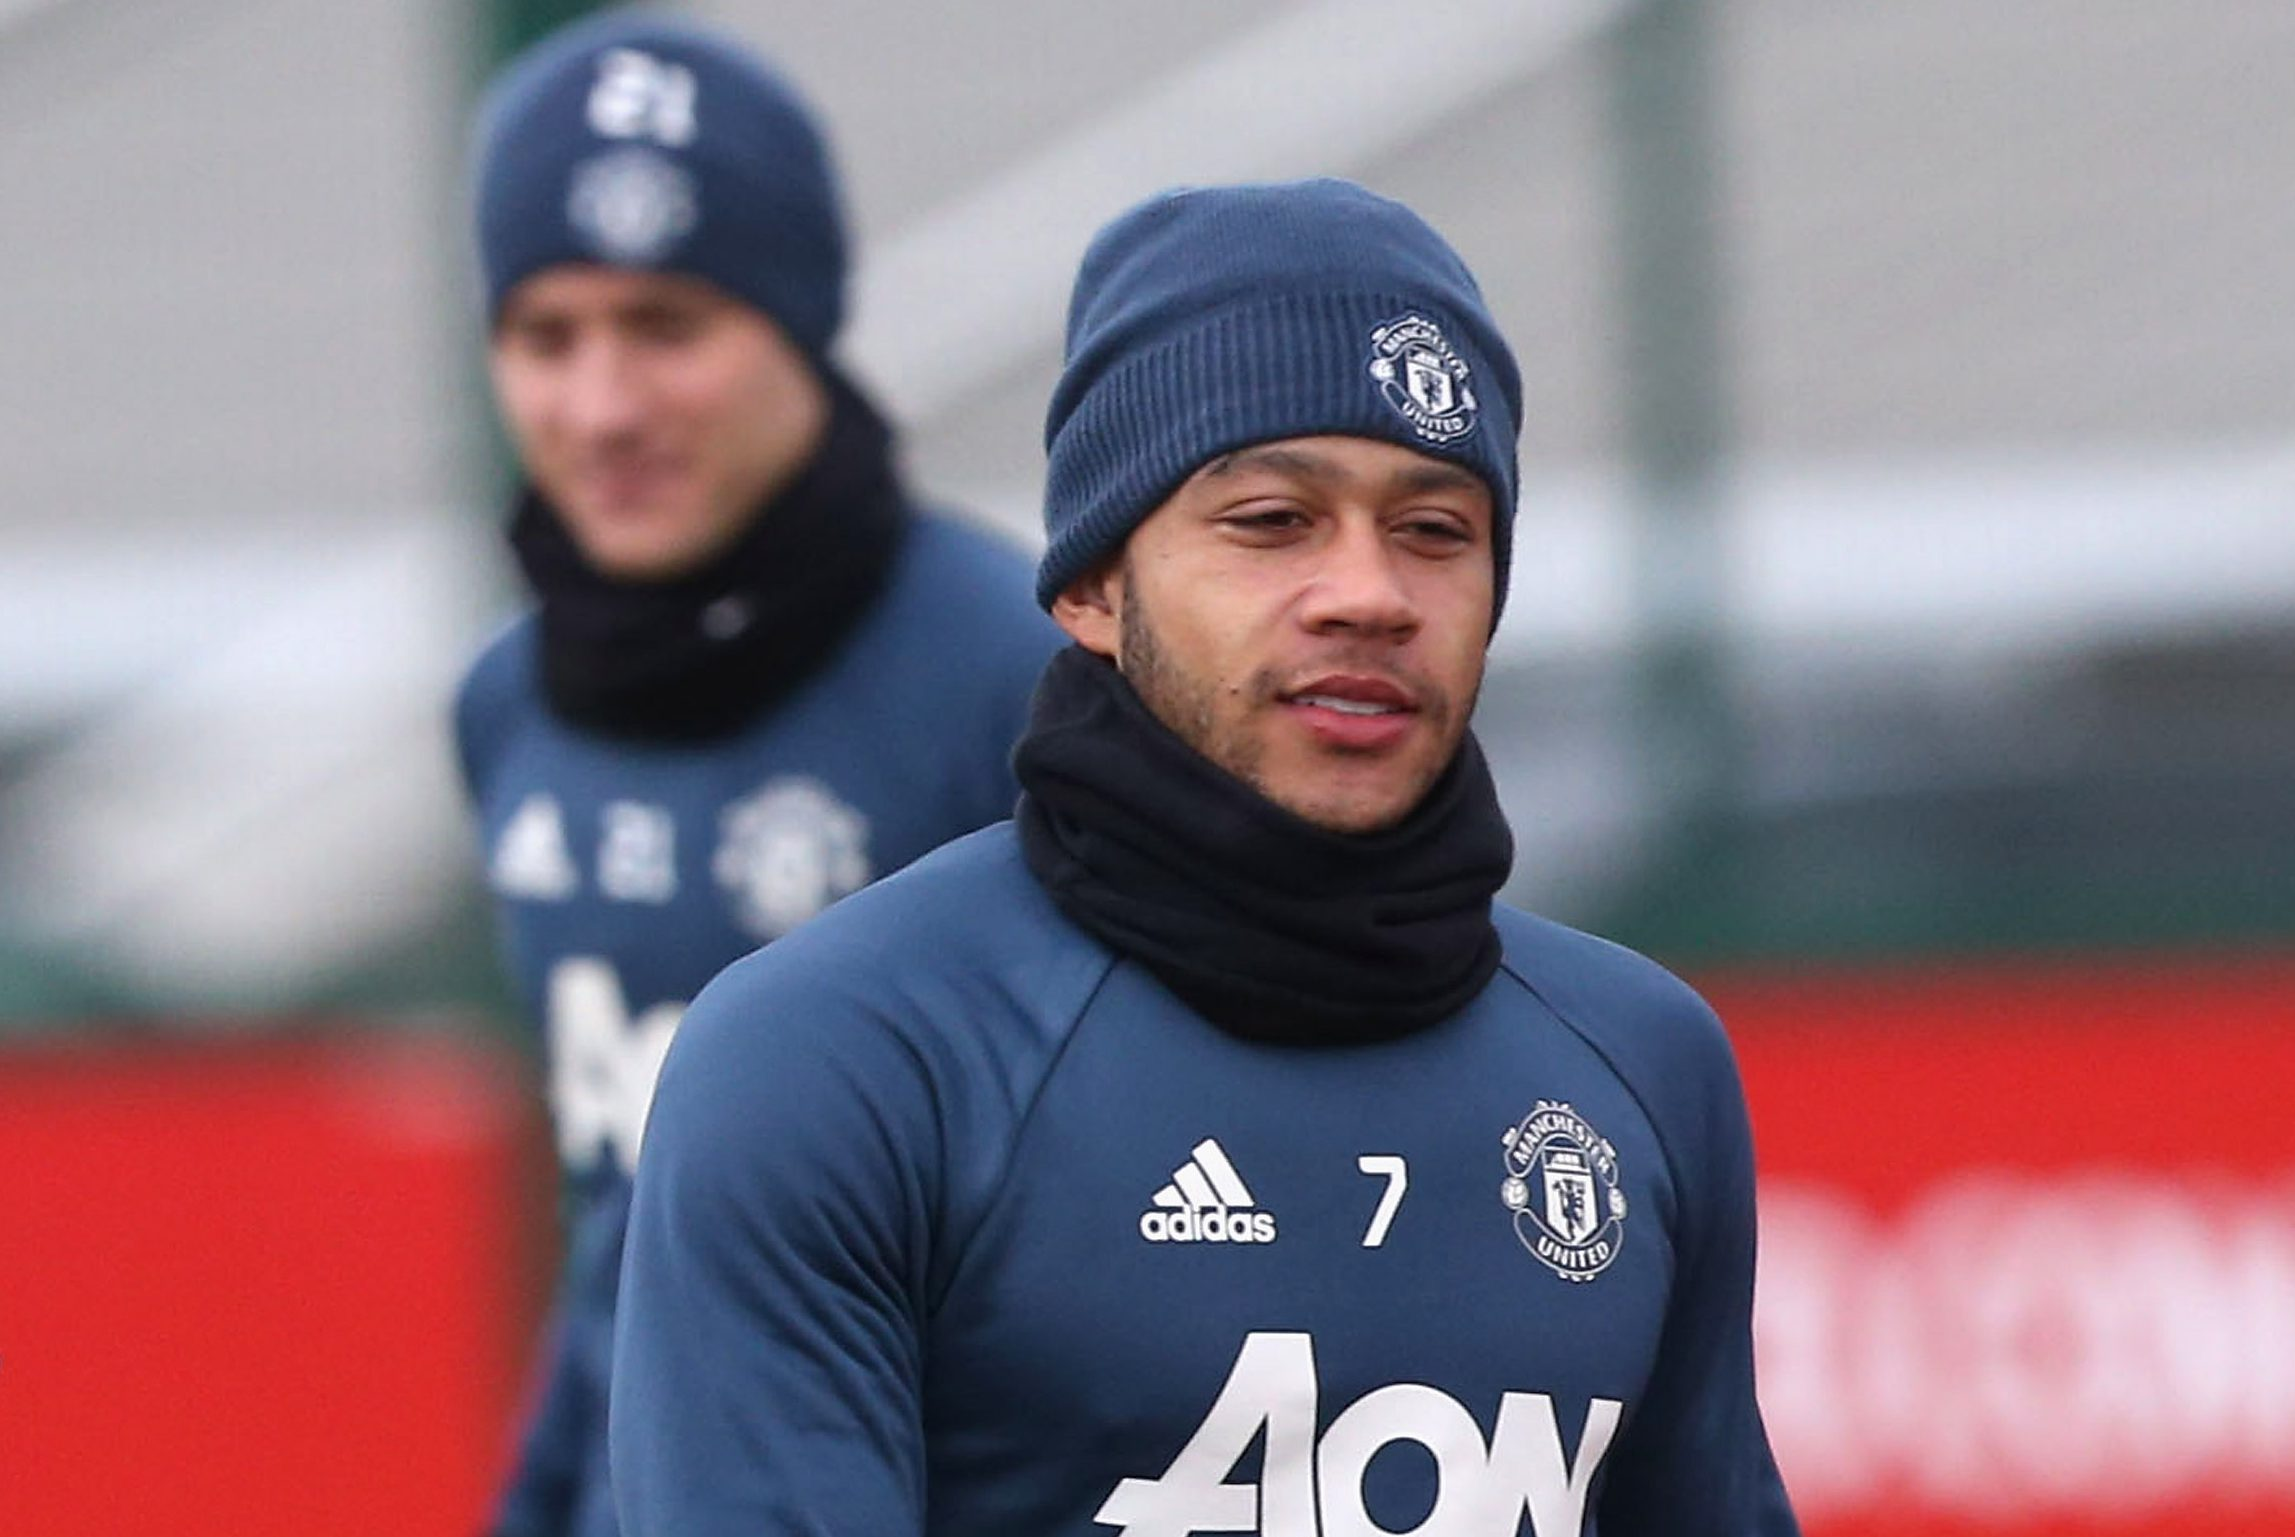 MANCHESTER, ENGLAND - DECEMBER 21: (EXCLUSIVE COVERAGE) Memphis Depay of Manchester United in action during a first team training session at Aon Training Complex on December 21, 2016 in Manchester, England. (Photo by John Peters/Man Utd via Getty Images)